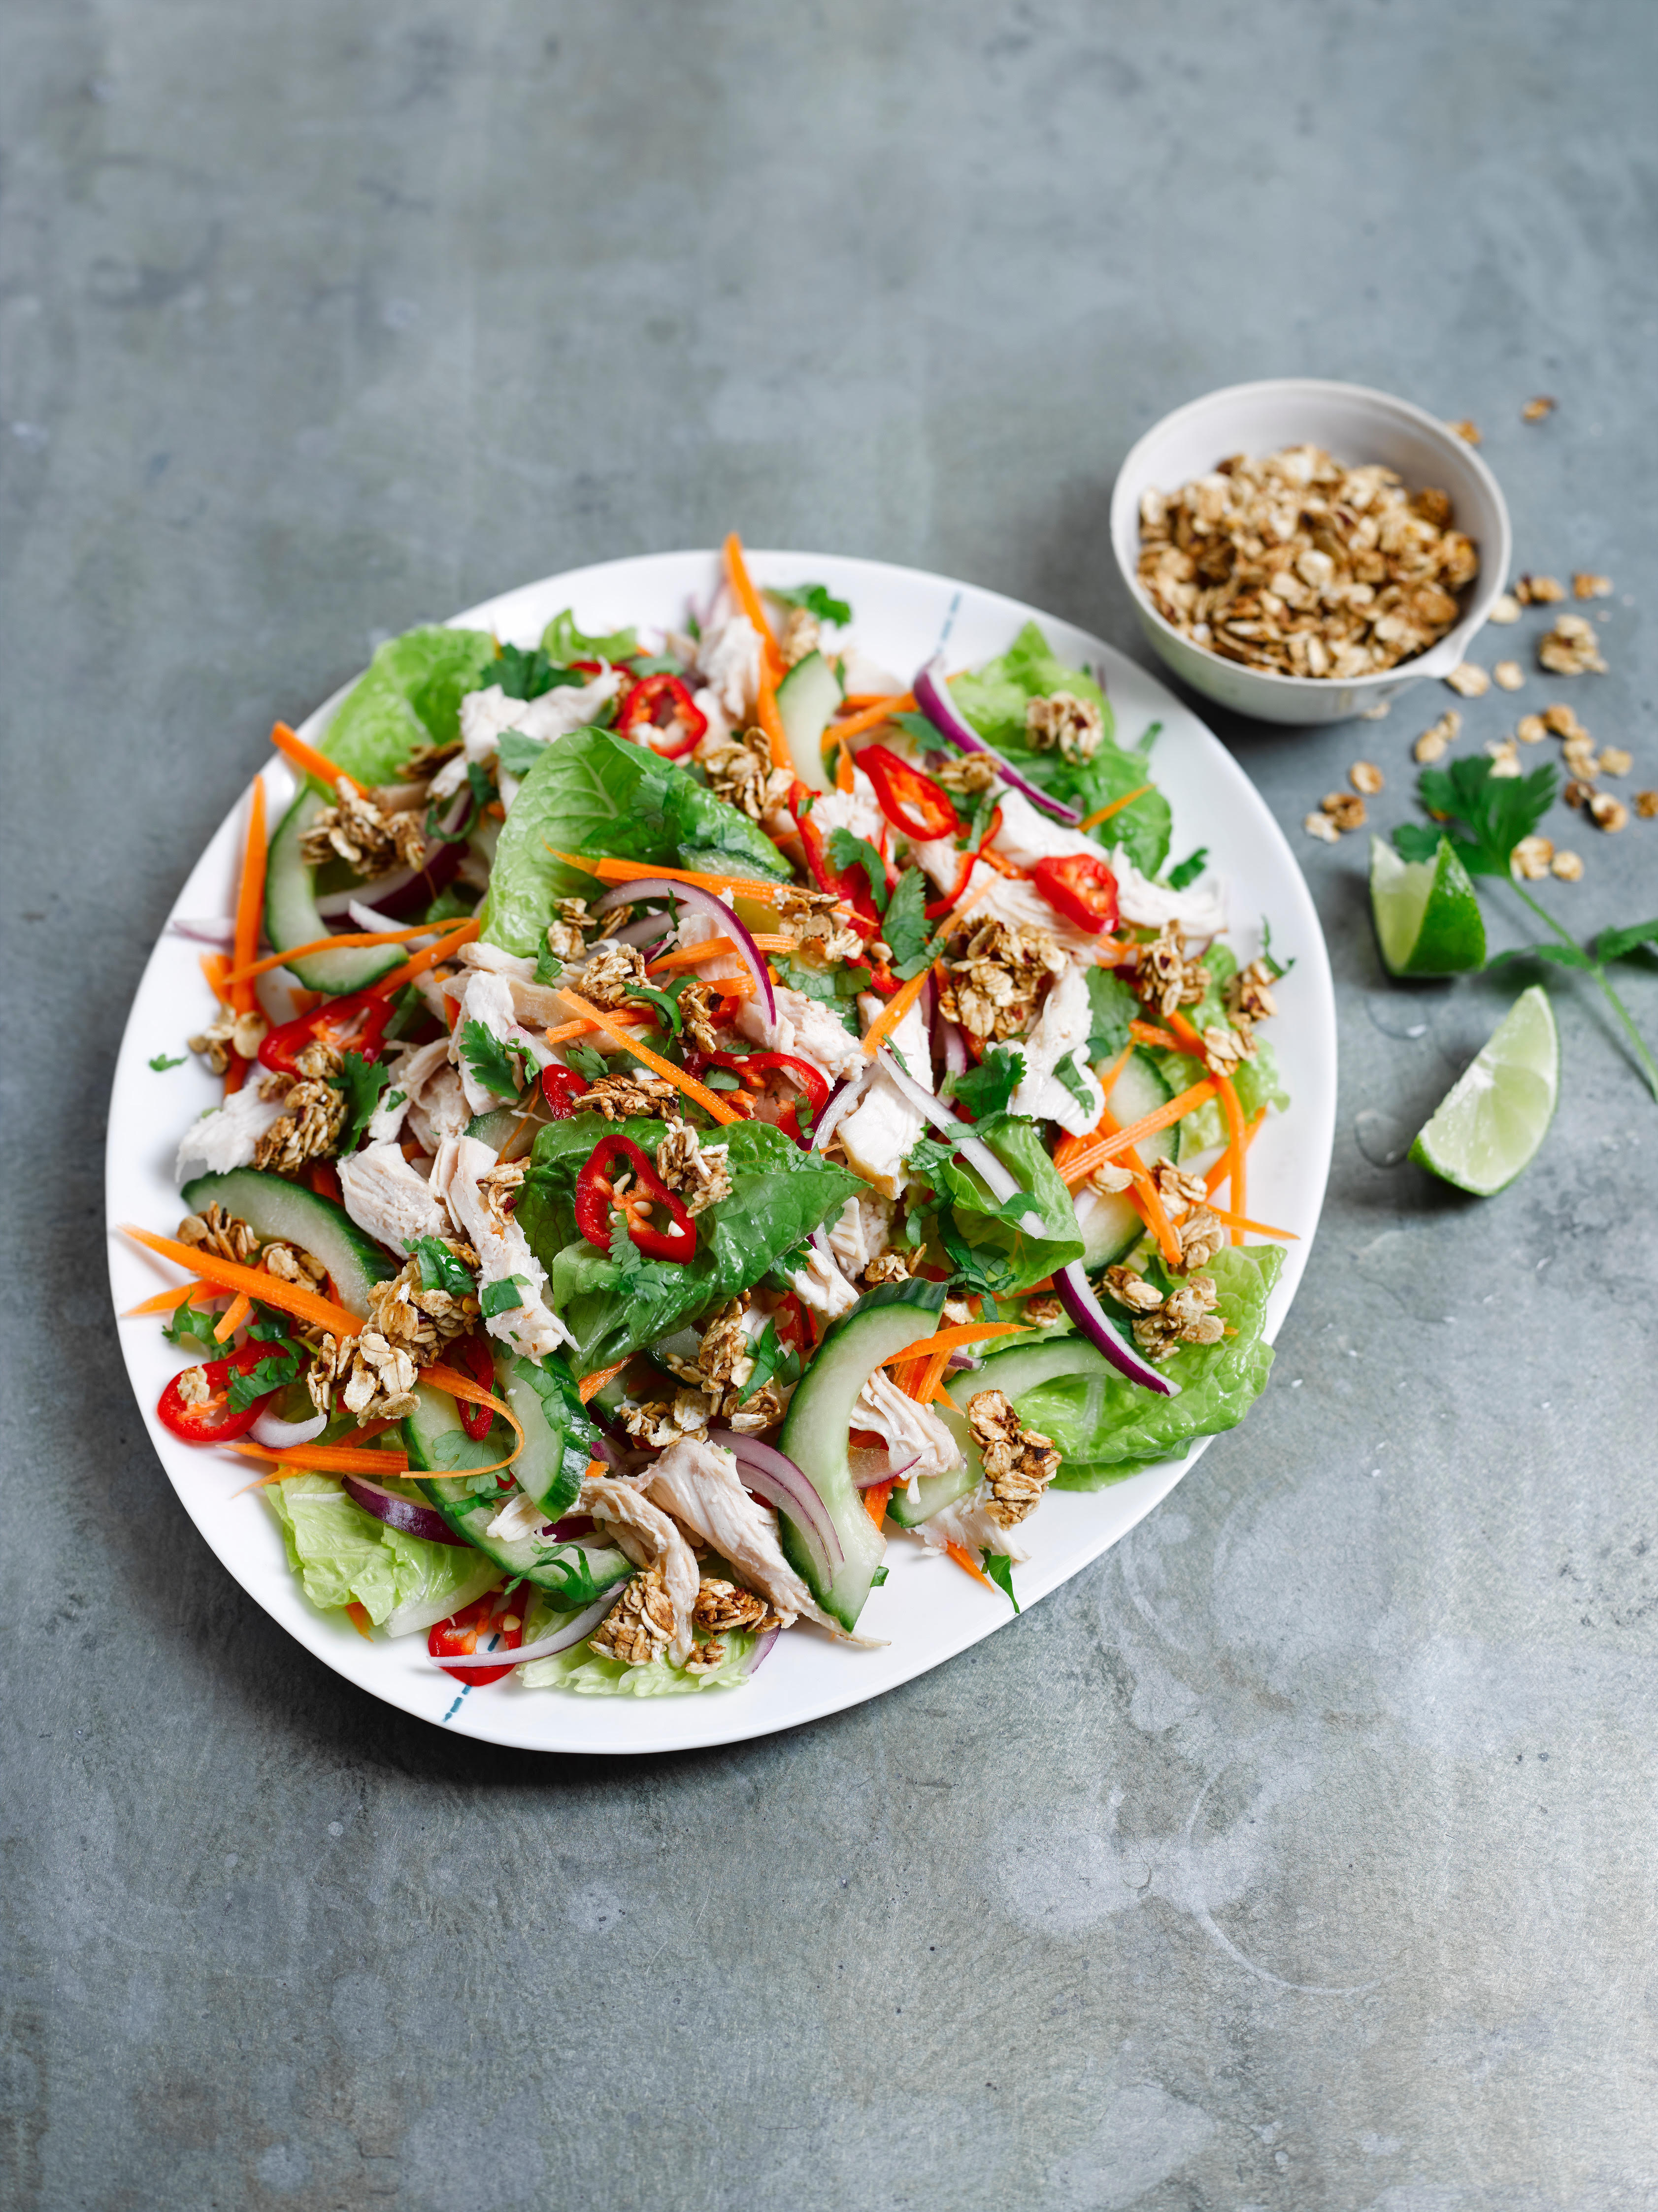 http://nibblesnscribbles.com/wp-content/uploads/2019/08/WHITES-OATS-CRUNCHY-ASIAN-CHICKEN-SALAD.jpg